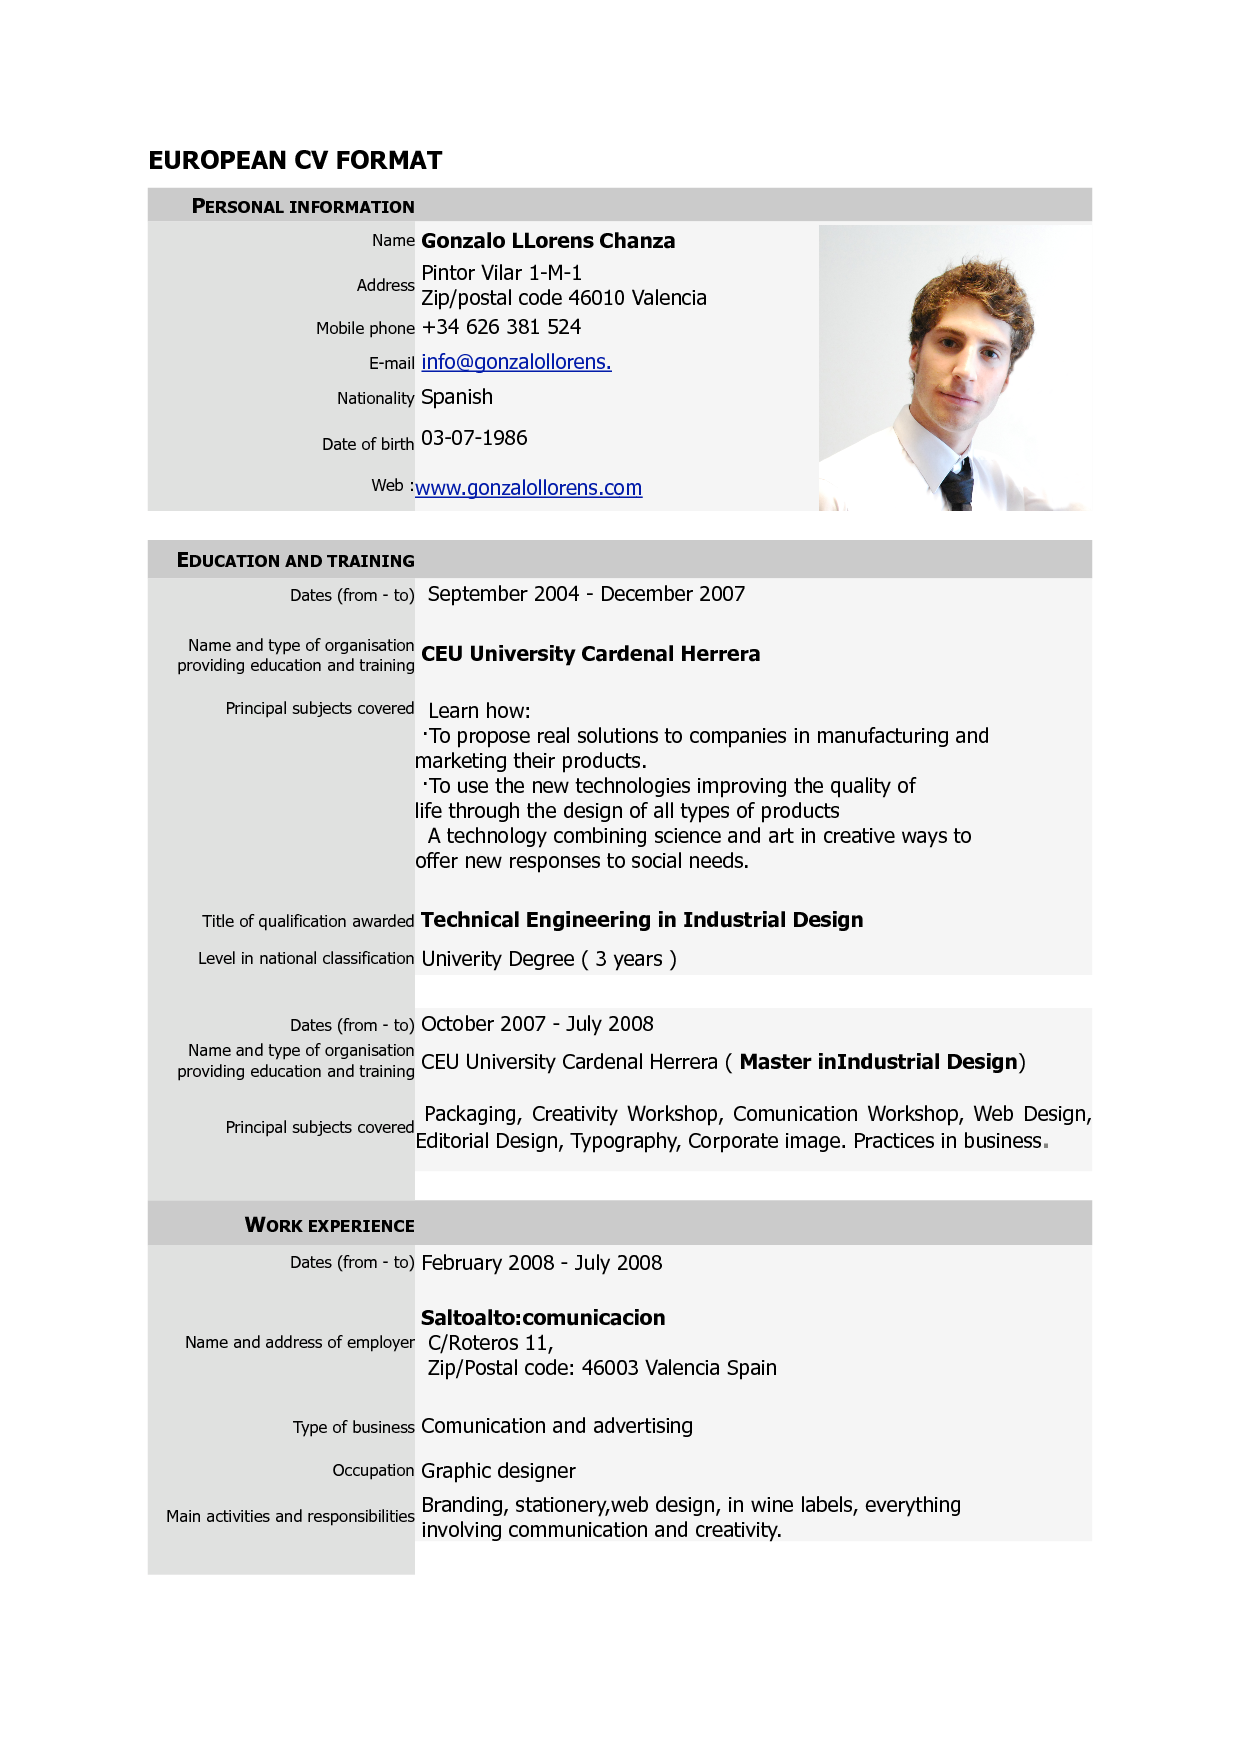 pdf resume sample medical claims analyst examples cover letter for rental application and get ideas - Samples Of Resume Pdf